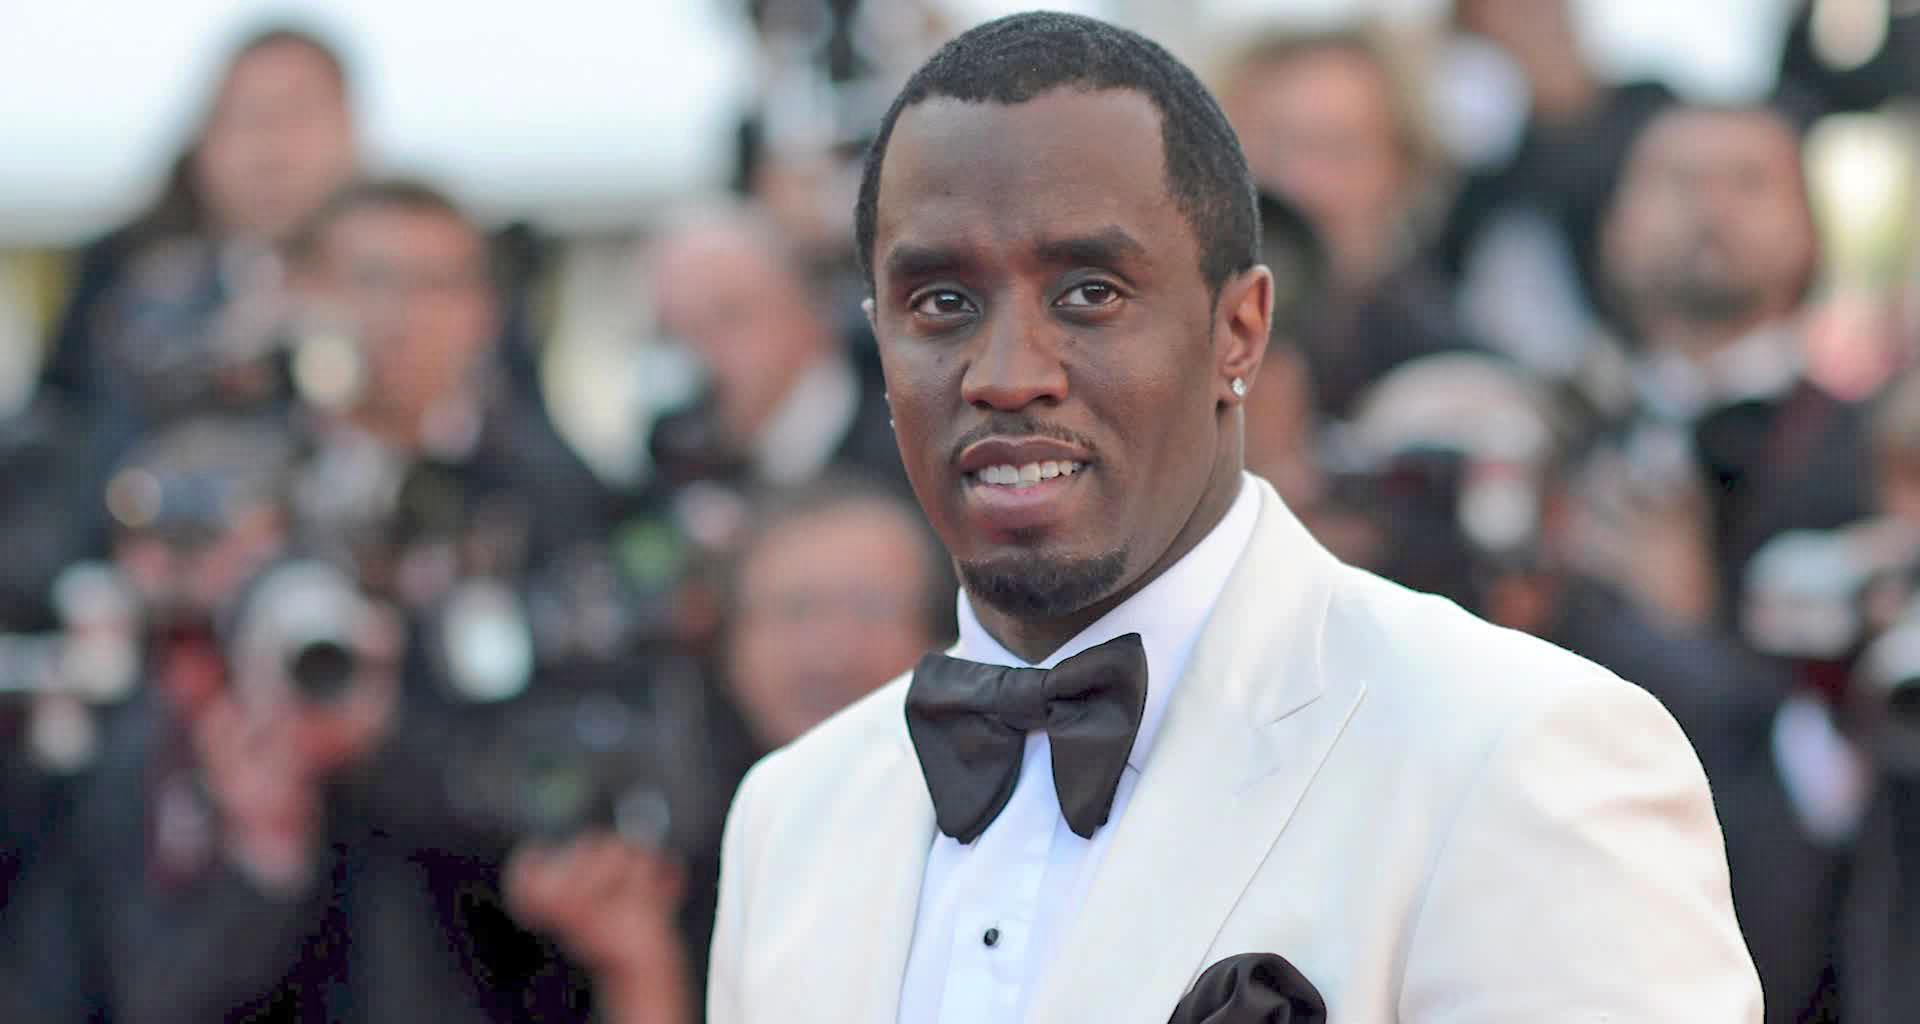 Diddy Receives Backlash Following This Recent Post About The Election